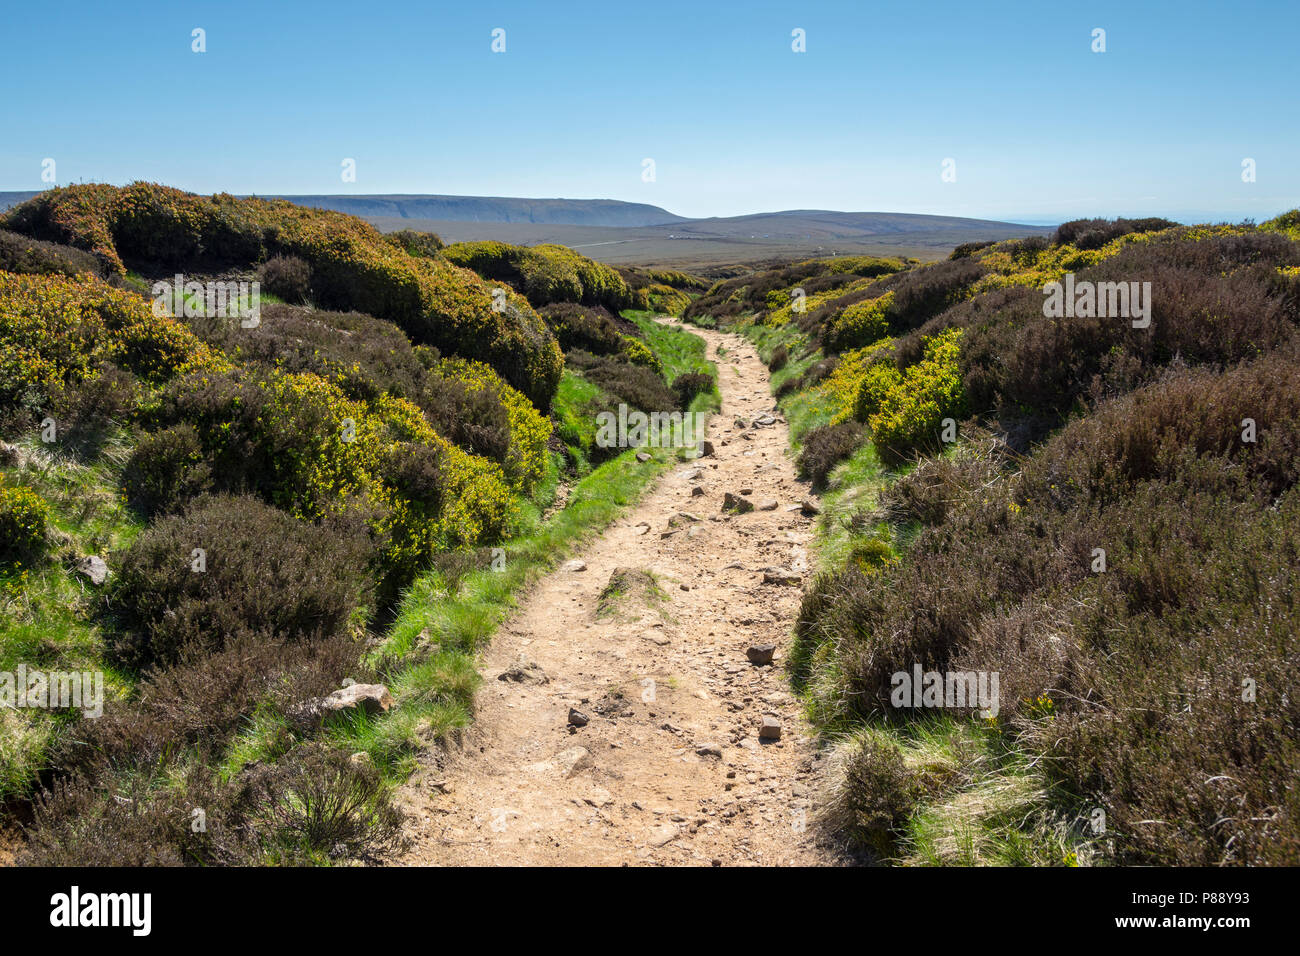 The Kinder Scout plateau from the Devil's Dike on the Pennine Way, on the Bleaklow plateau above Glossop, Peak District, Derbyshire, England, UK. - Stock Image